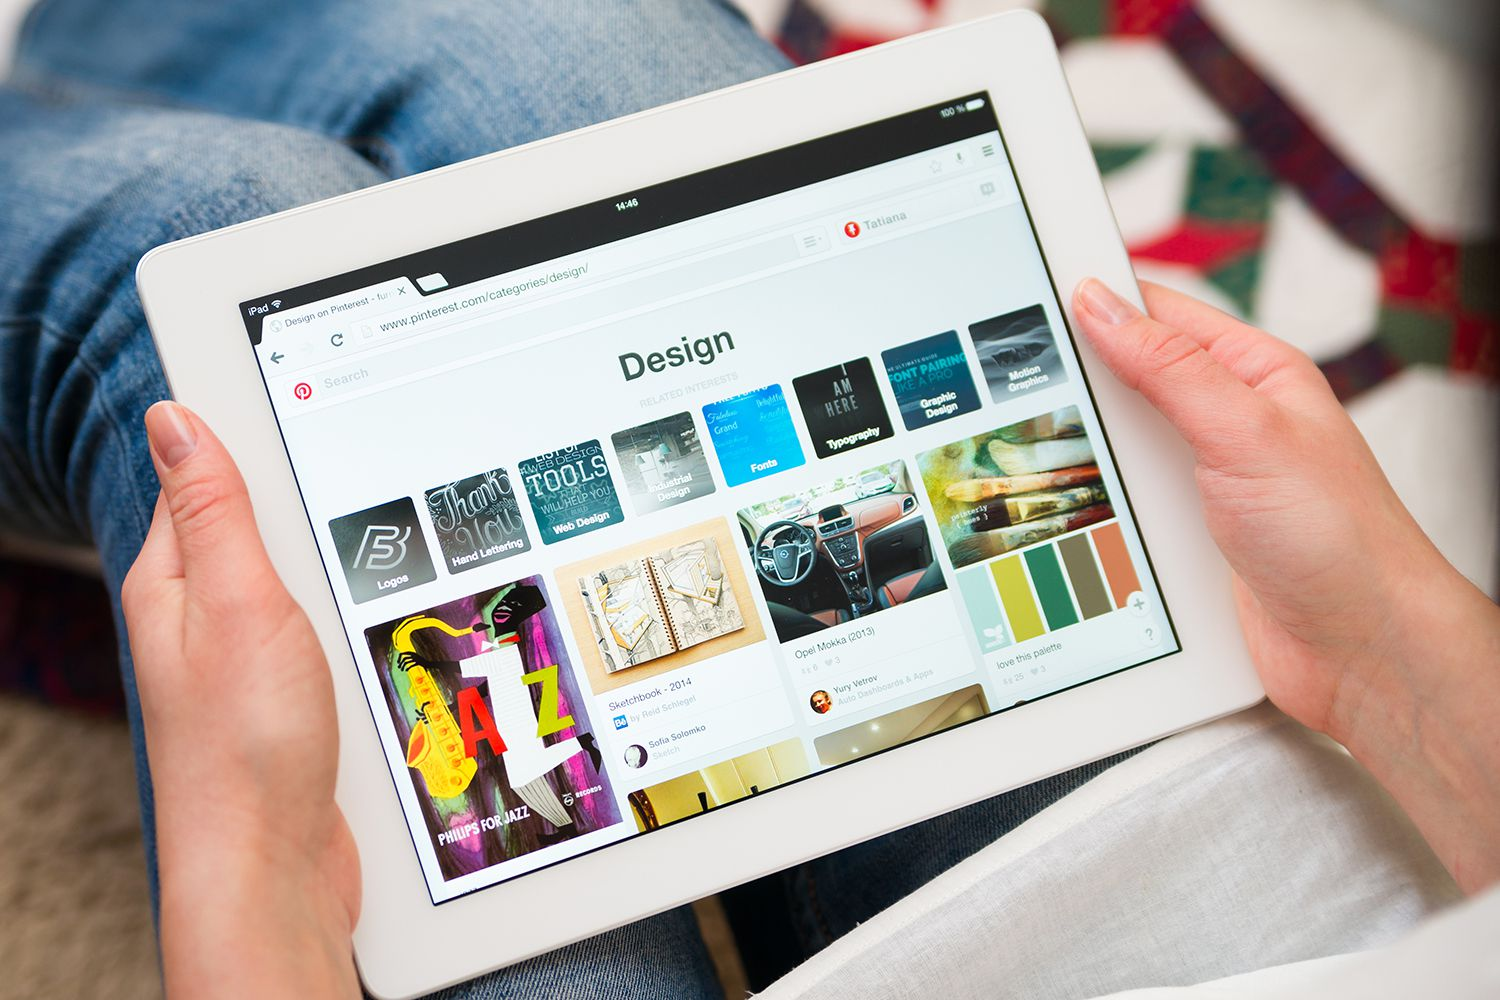 8 of the Best Ways to Save Stuff Online for Later